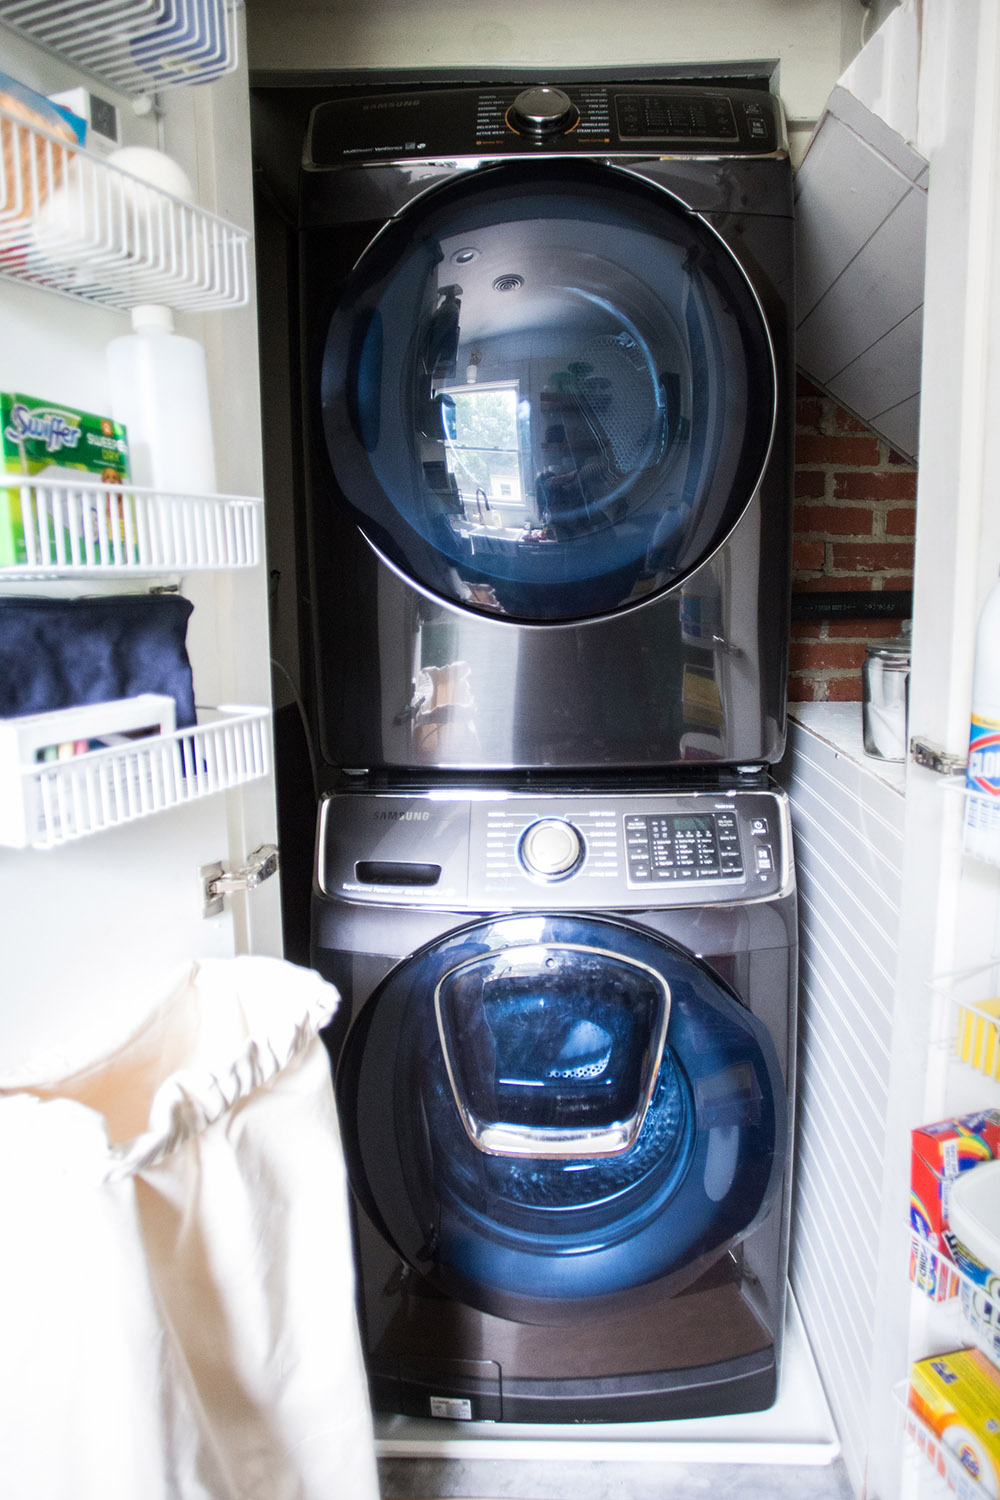 A closet with a washing machine, a dryer, and shelves on the doors.